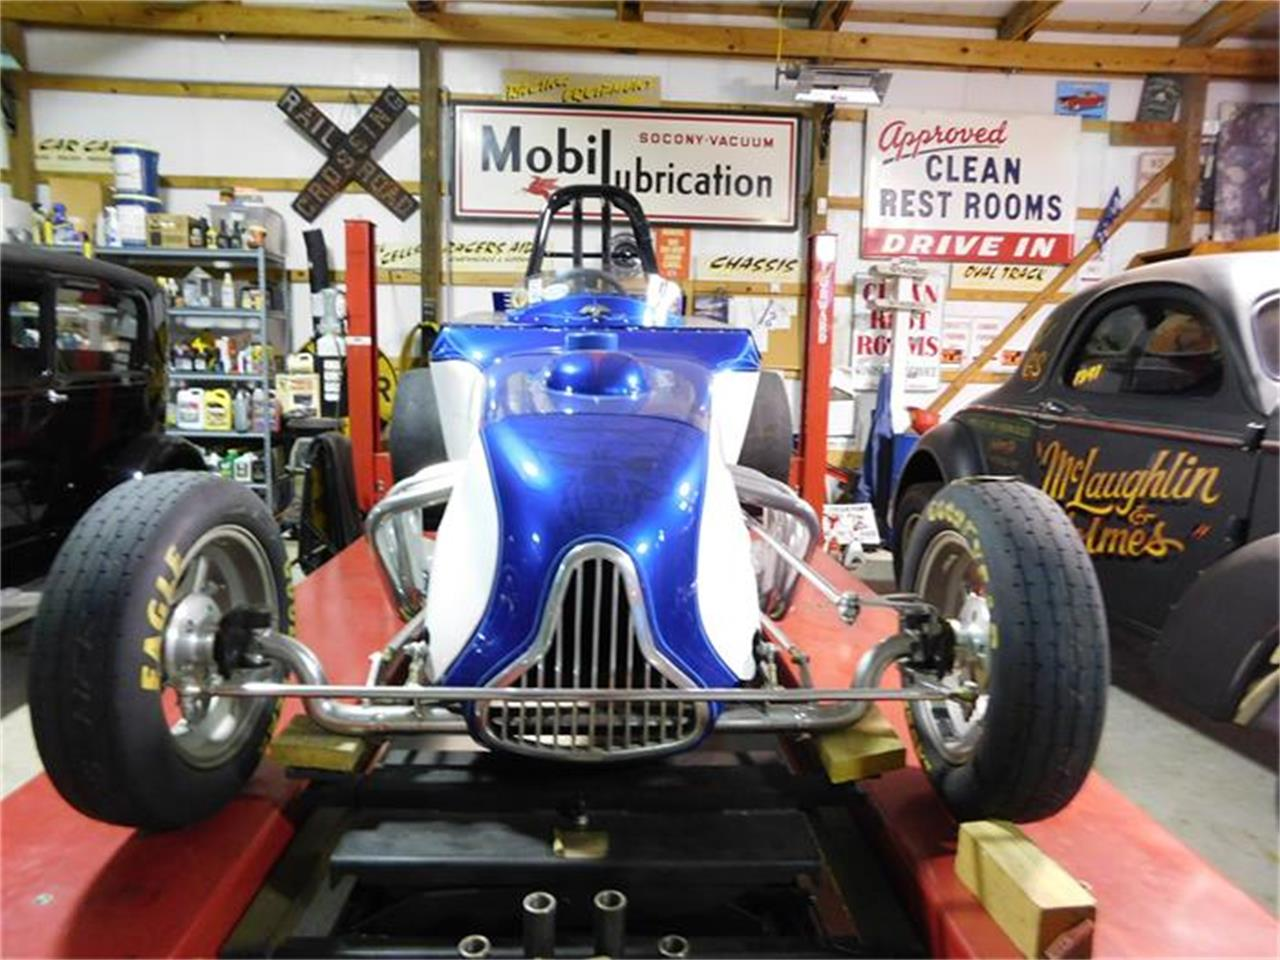 Large Picture of Classic 1923 Unspecified Midget Race Car - $20,000.00 Offered by Classic Car Pal - H727